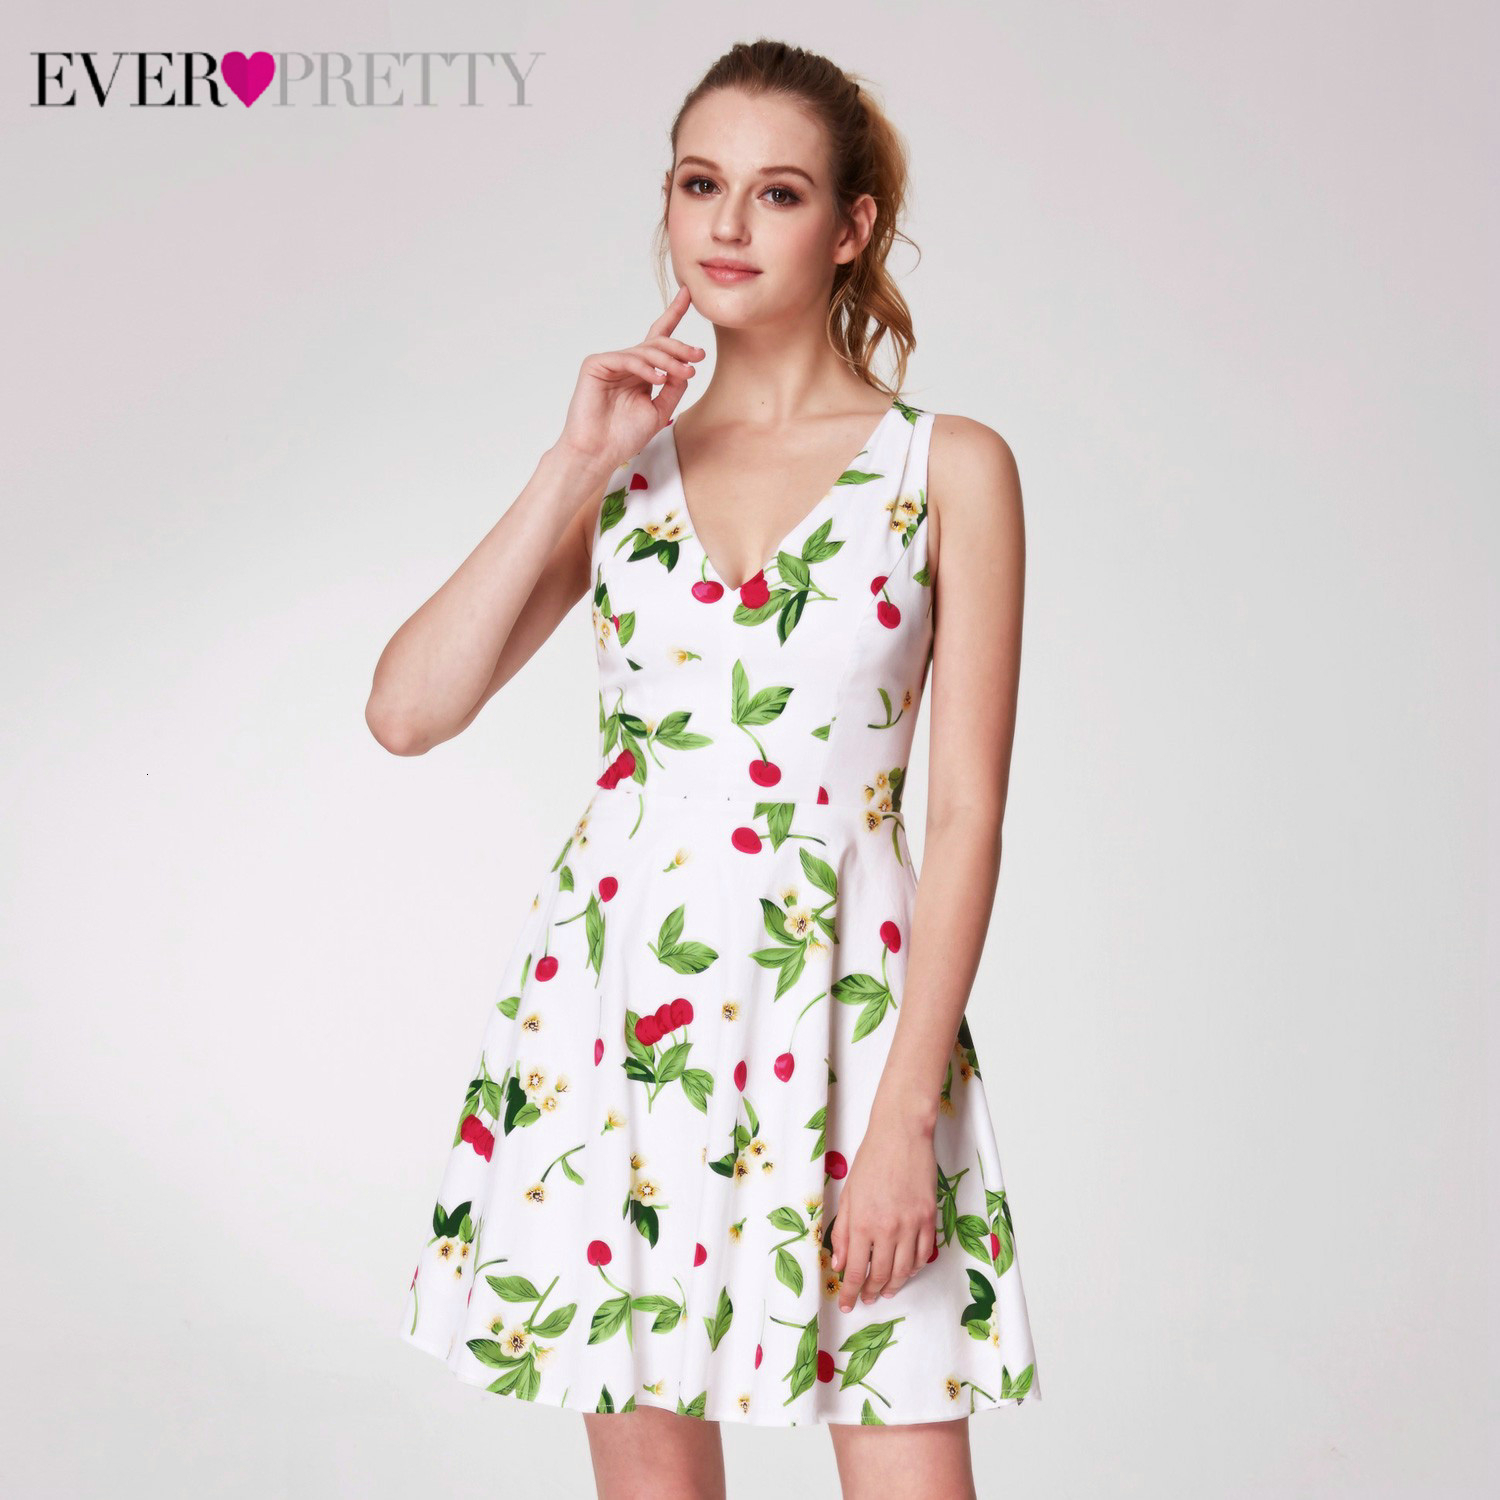 Elegant Floral Printed Homecoming Dresses Ever Pretty AS05970WH A-Line Sleeveless Short Graduation Dresses Vestidos Cortos 2019